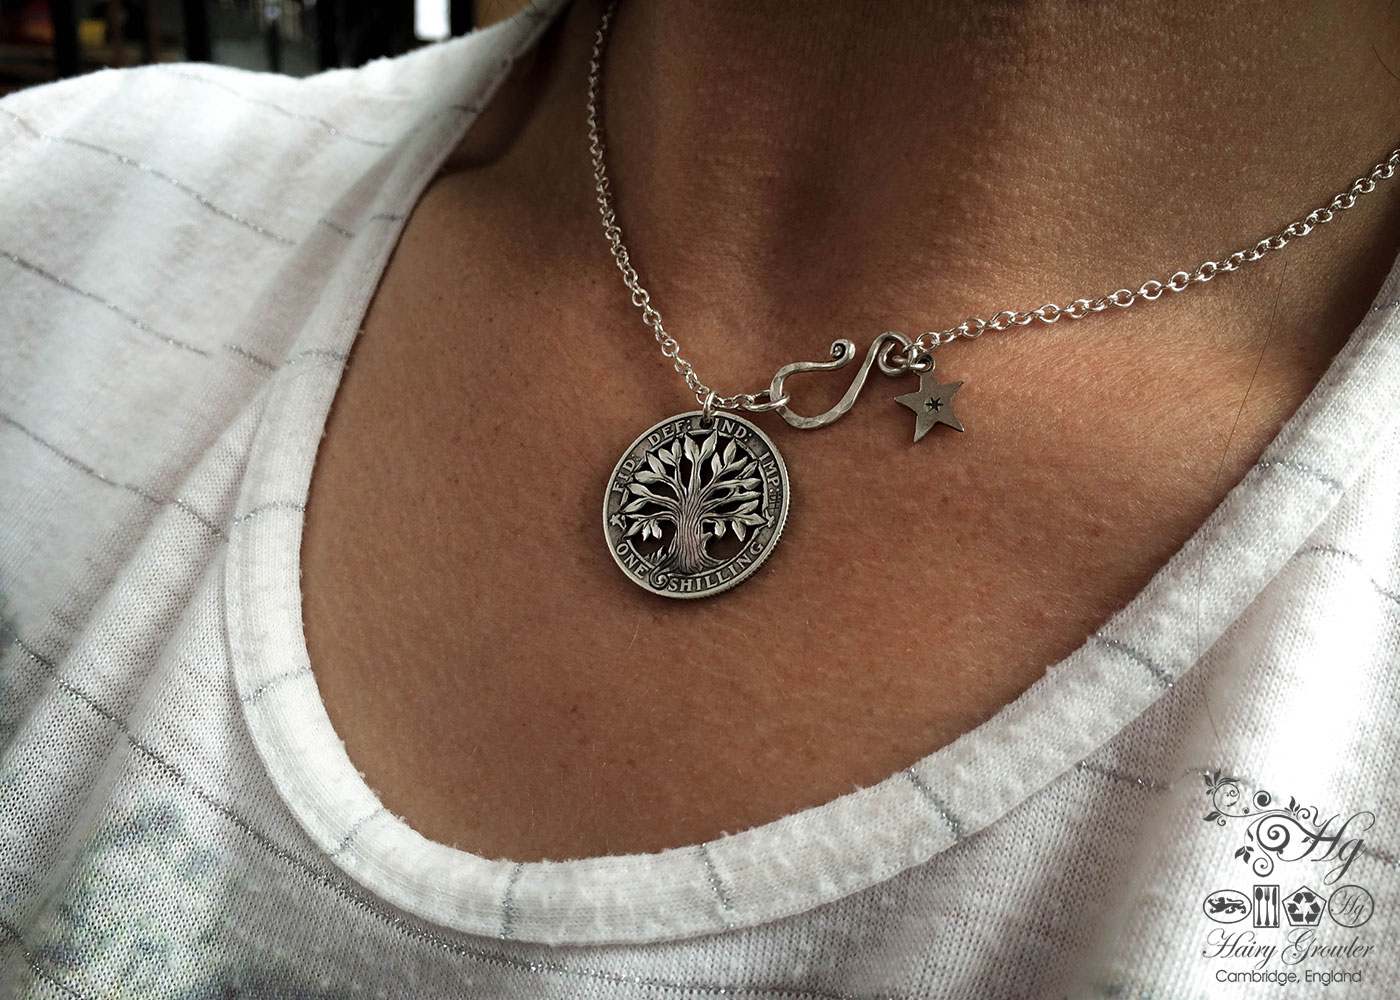 The Silver Shilling collection. silver tree-of-life necklace totally handcrafted and recycled from old sterling silver shilling coins. Designed and created by Hairy Growler Jewellery, Cambridge, UK